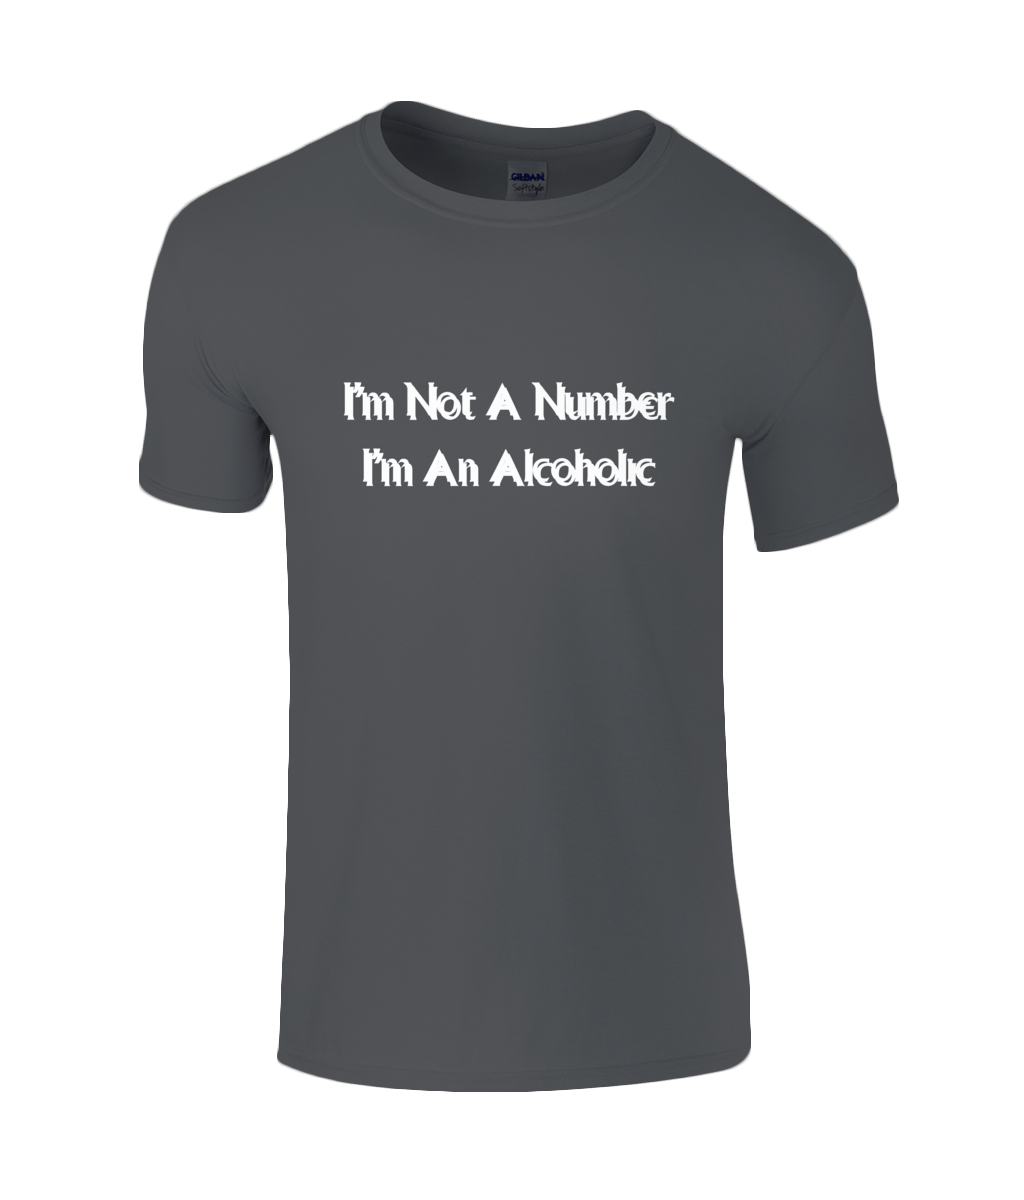 I'm Not A Number I'm An Alcoholic - men's t-shirt